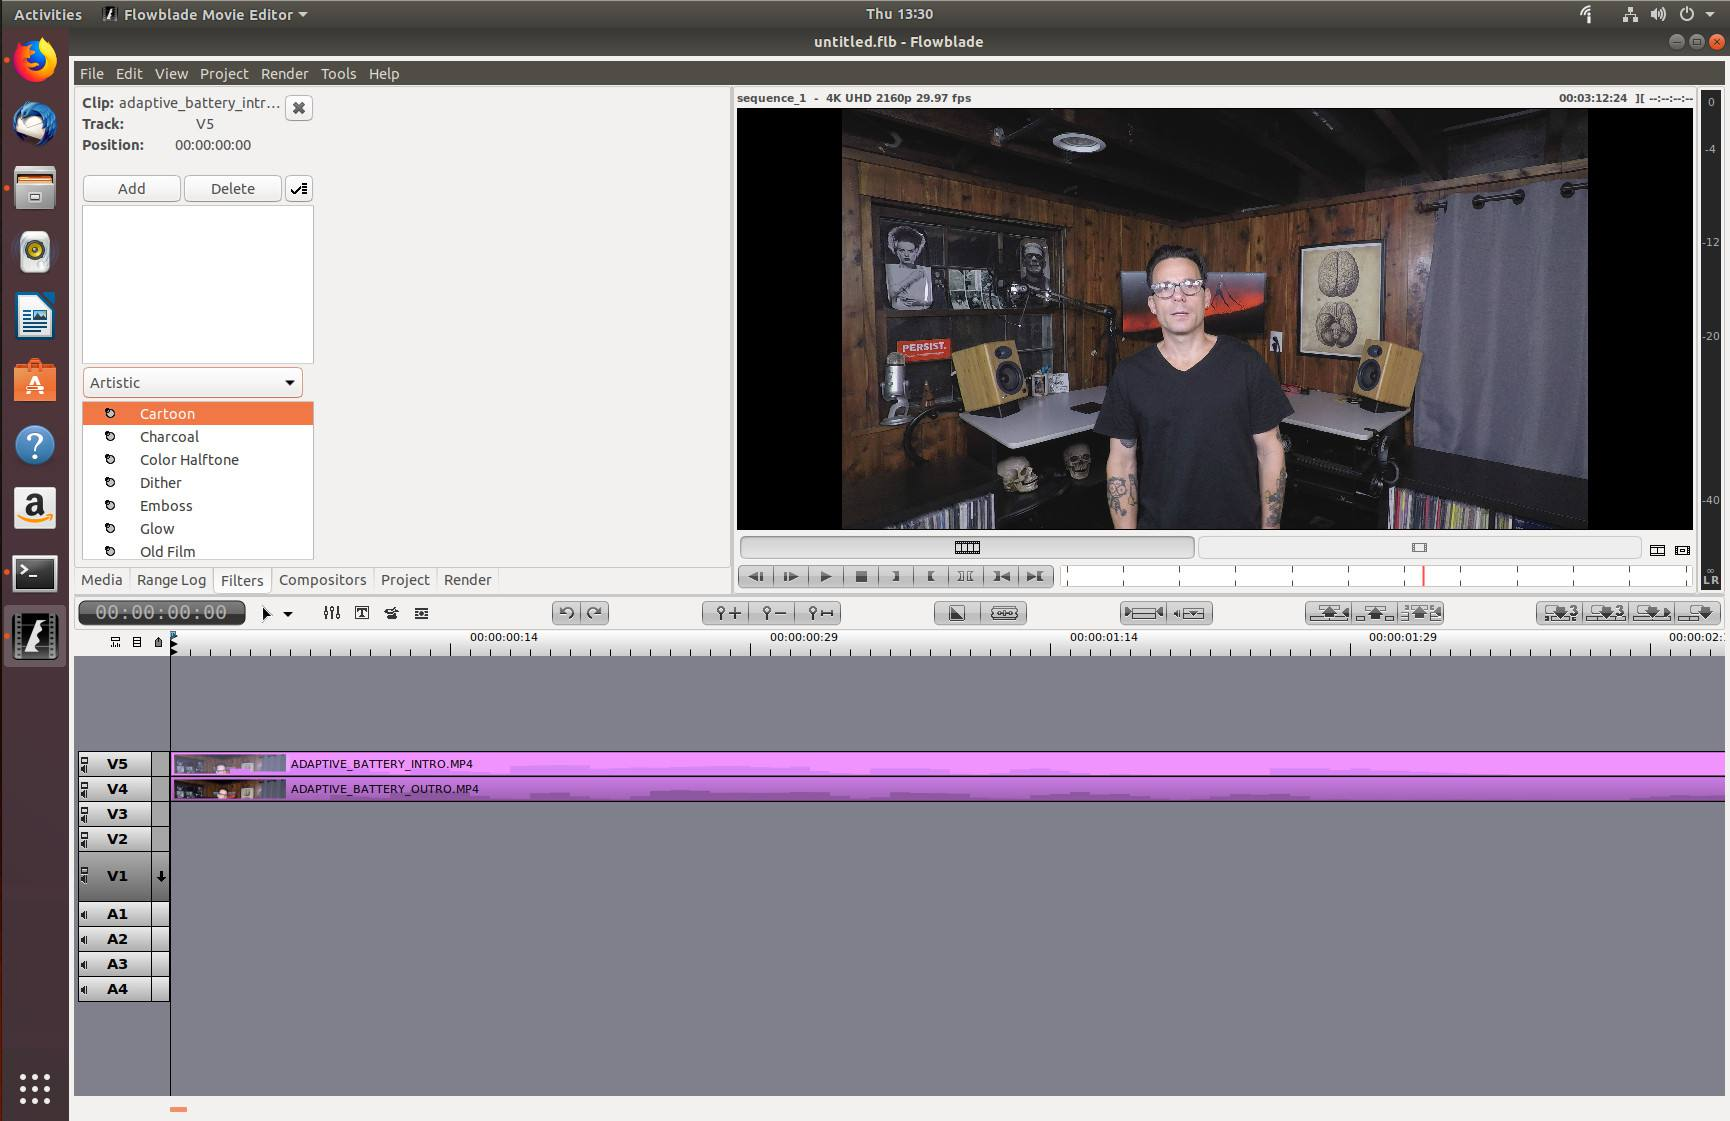 Editing a video in the Flowblade video editor